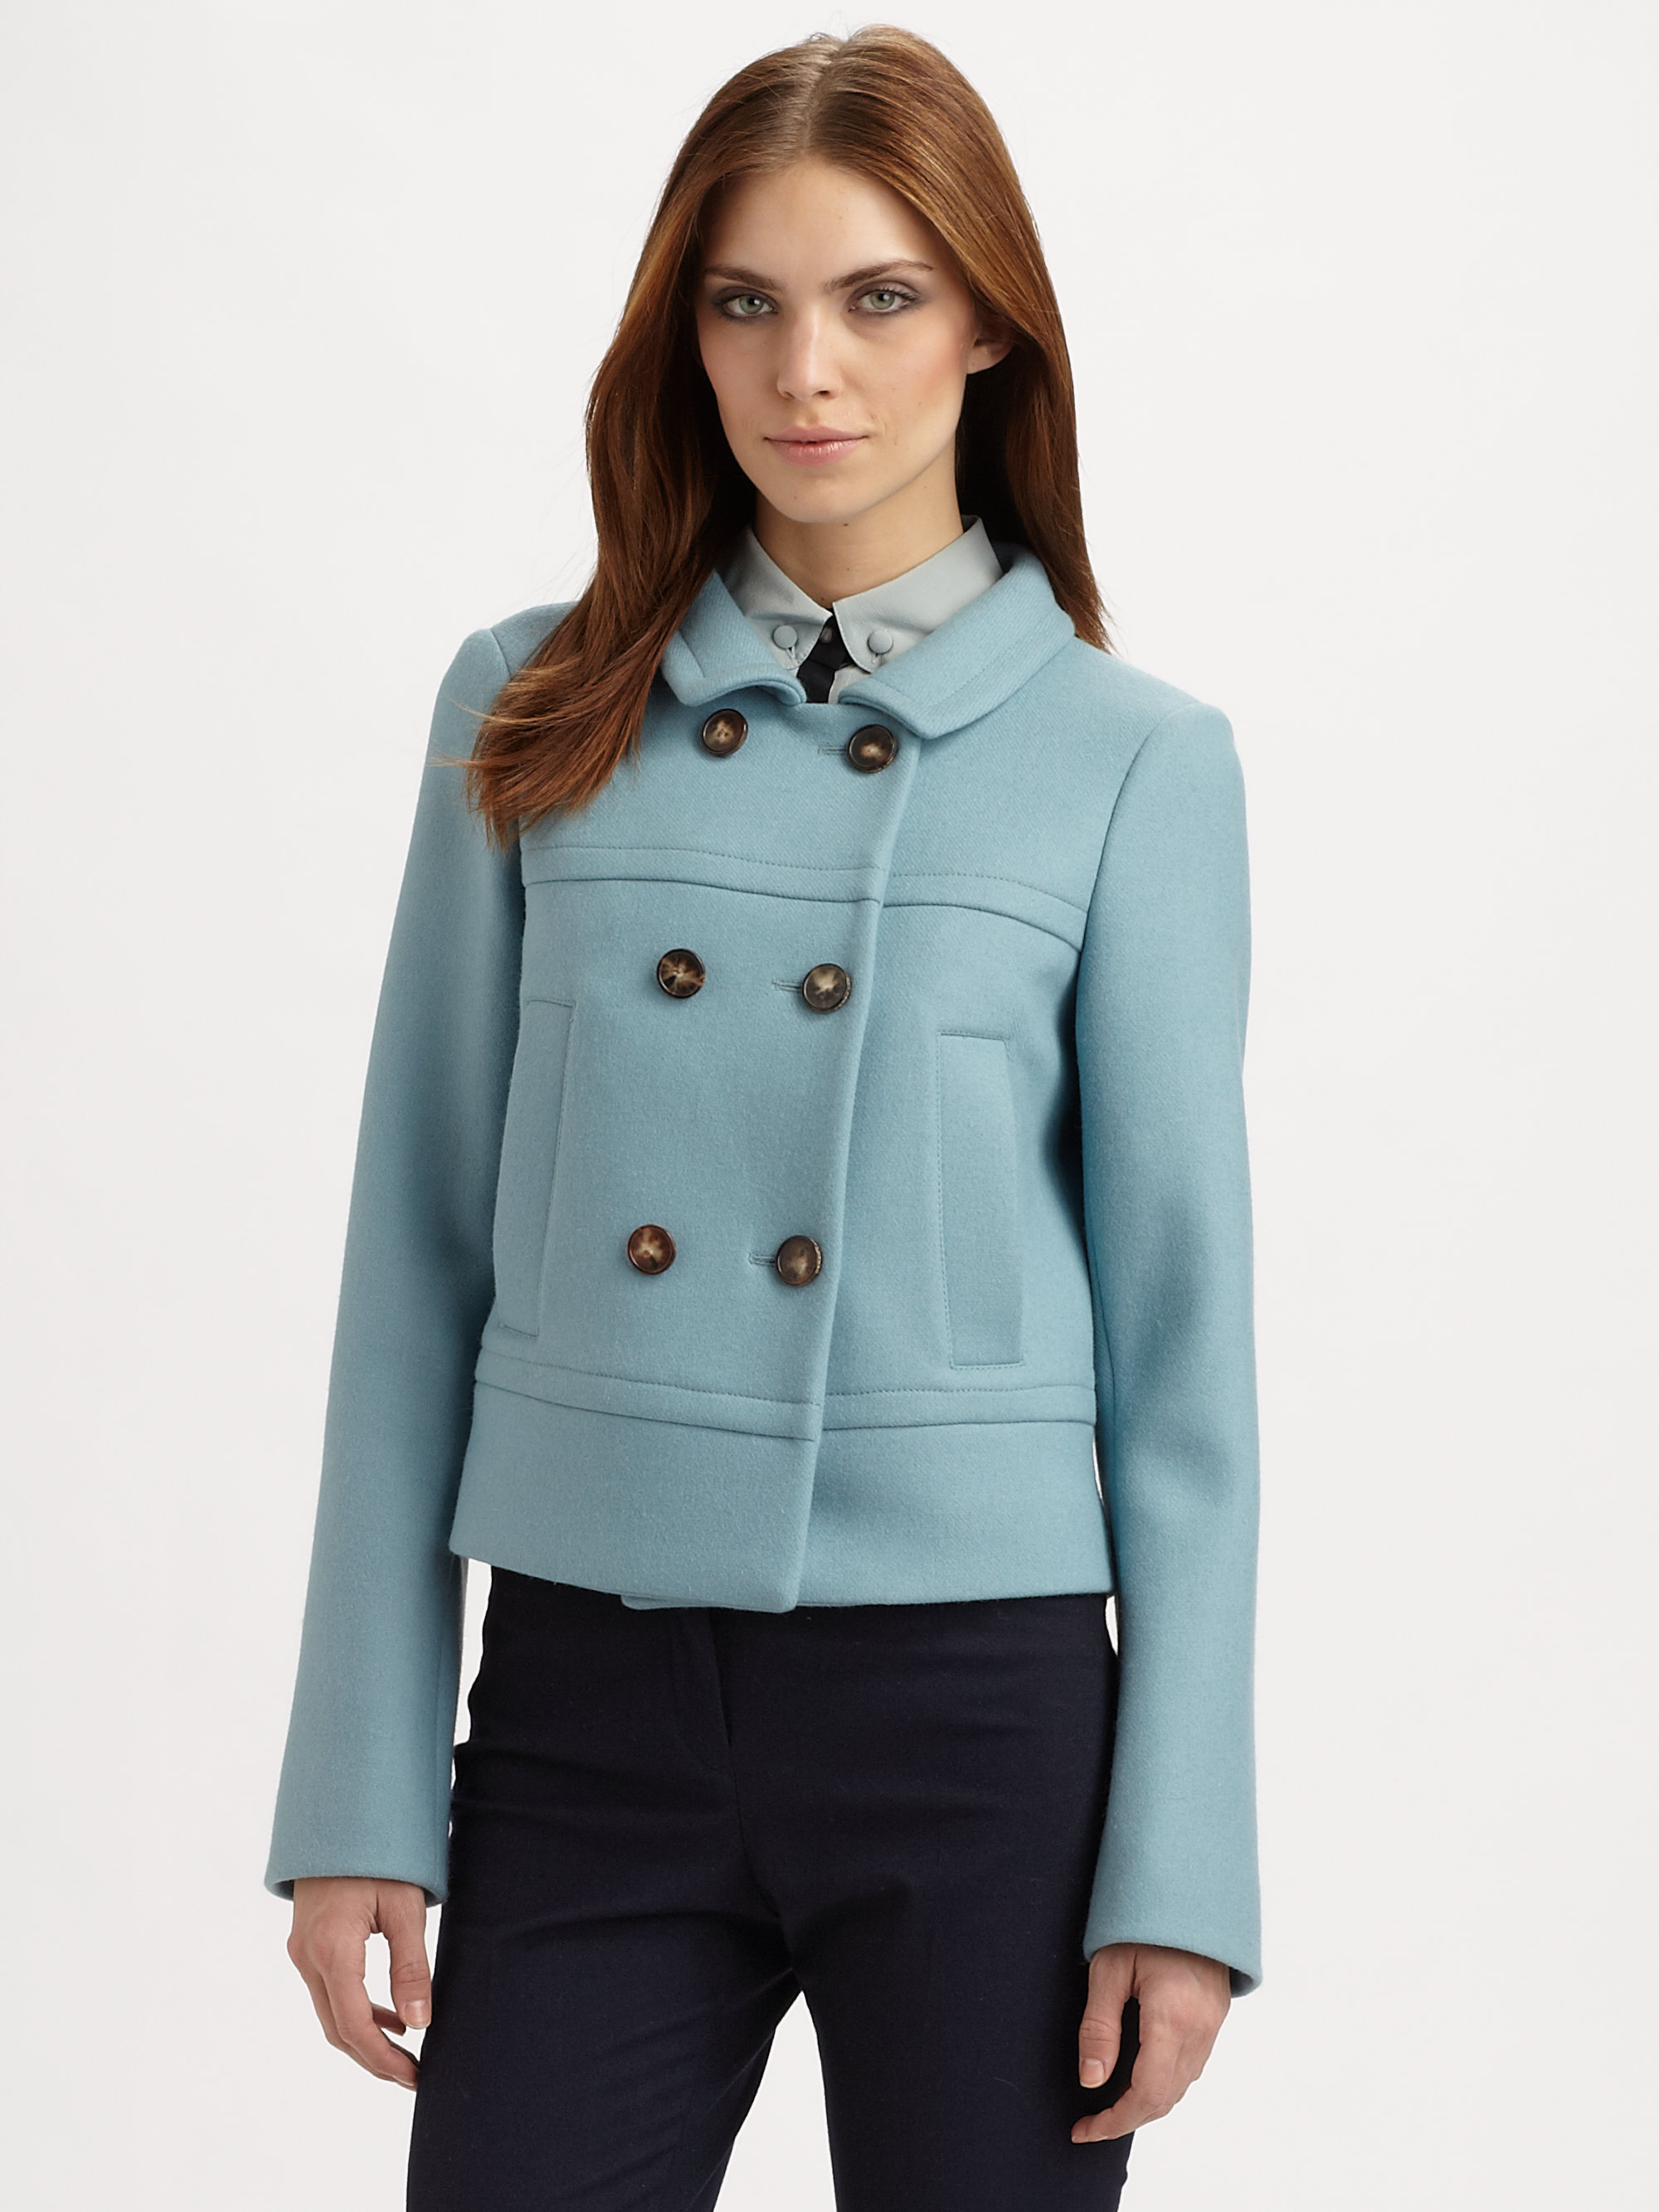 Derek lam Doublebreasted Wool Short Coat in Blue | Lyst